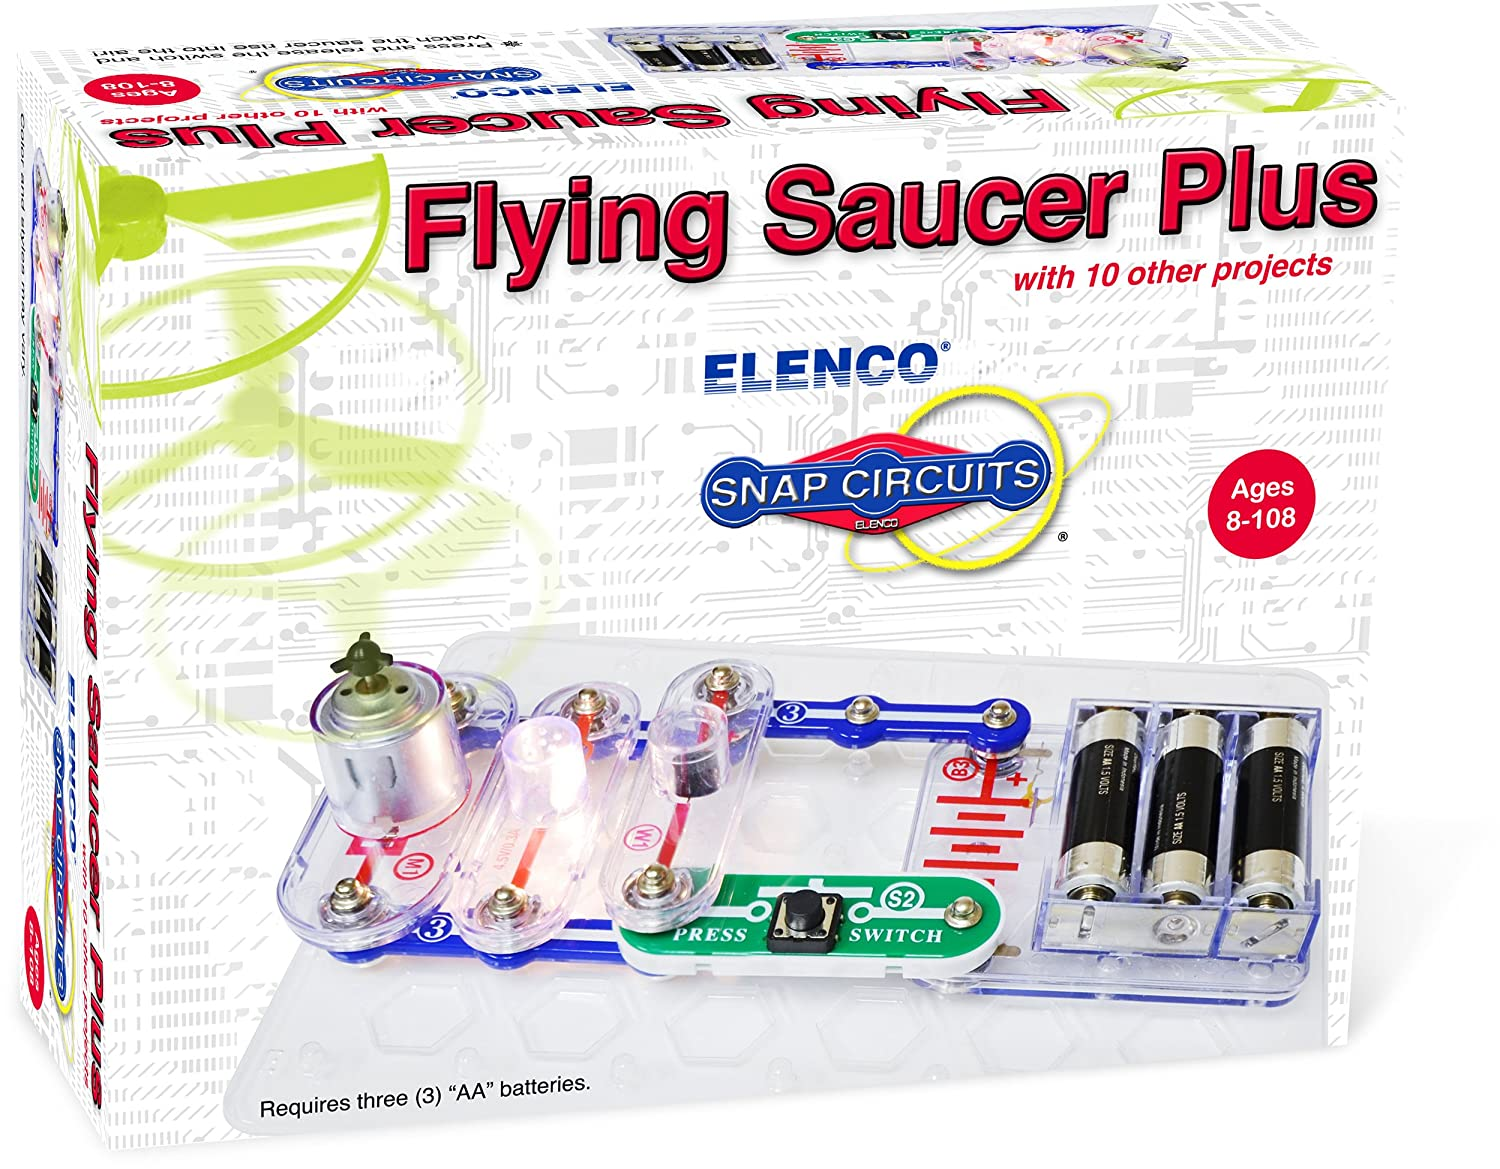 Elenco Electronics Flying Saucer Plus Mini Kit Toys Games Scg125 Snap Circuits Green Alternative Energy Learning